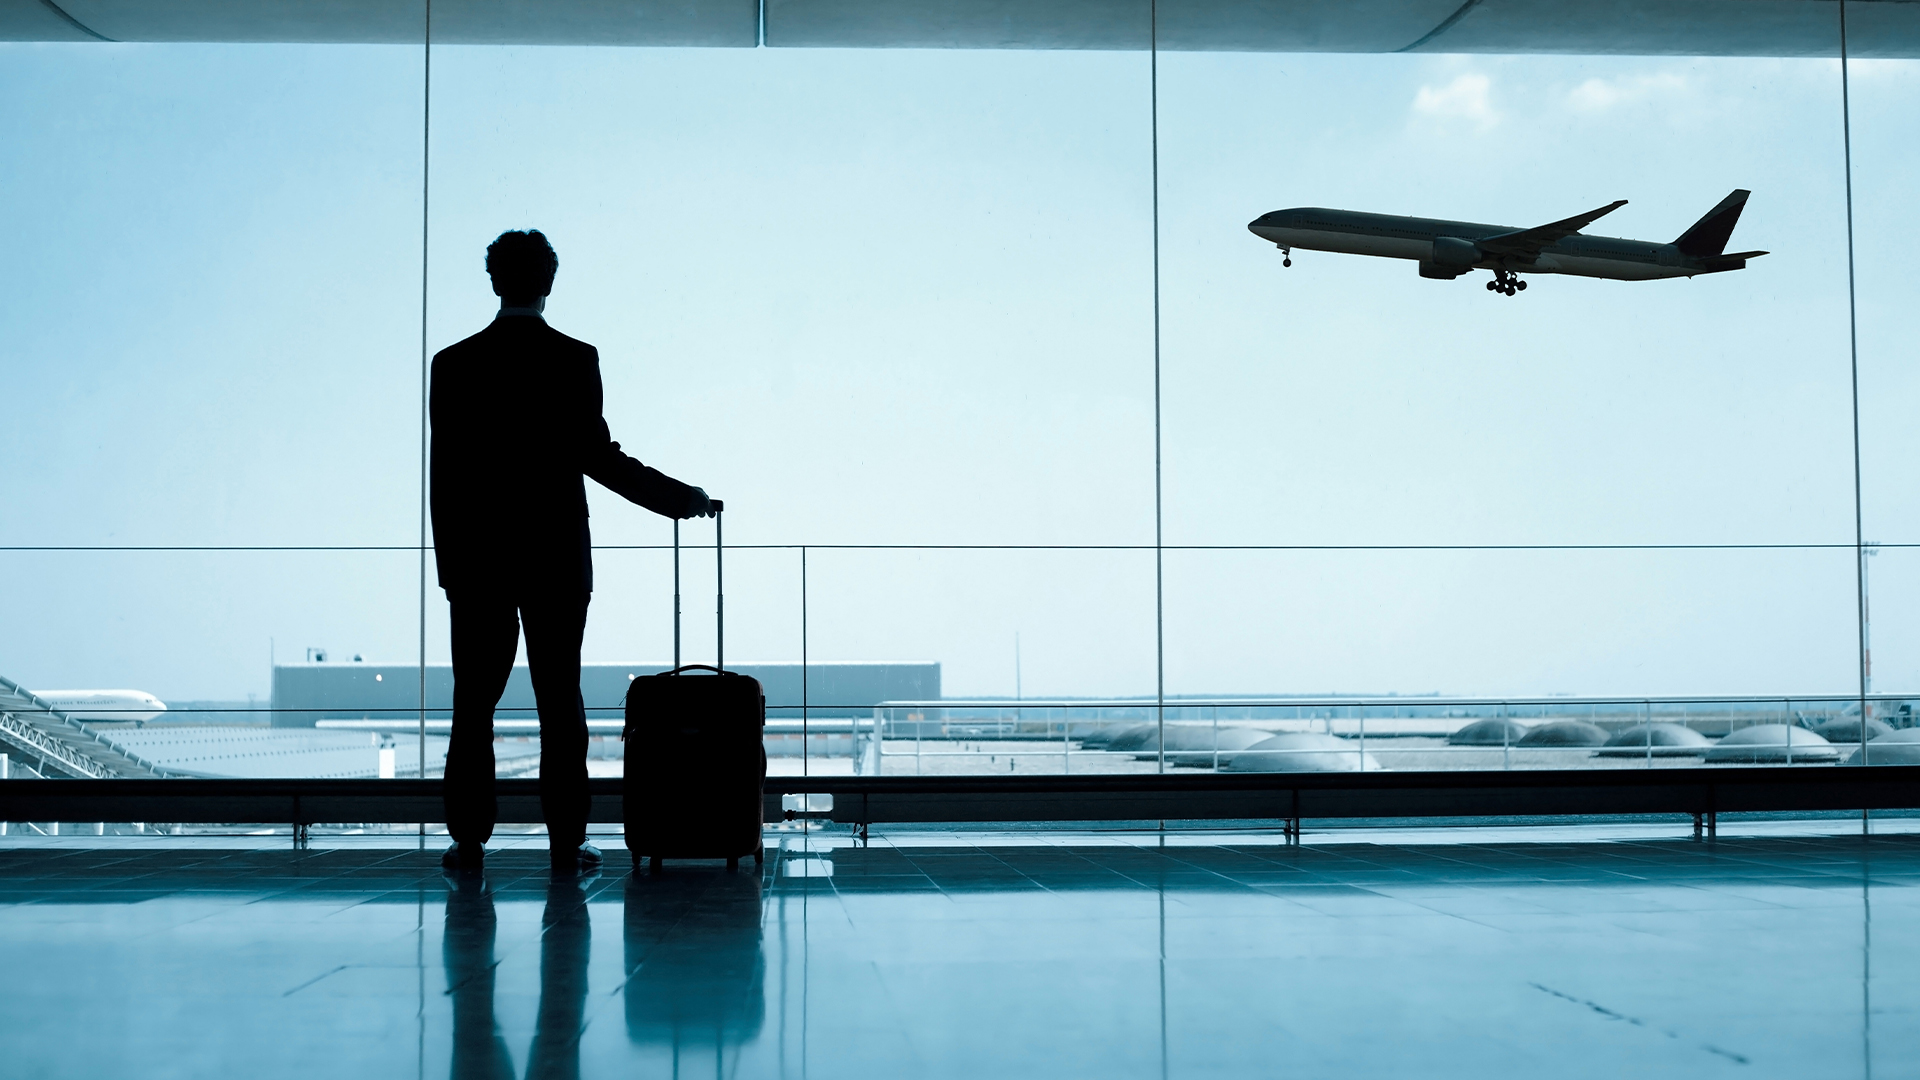 Transport-airport-ban-airline